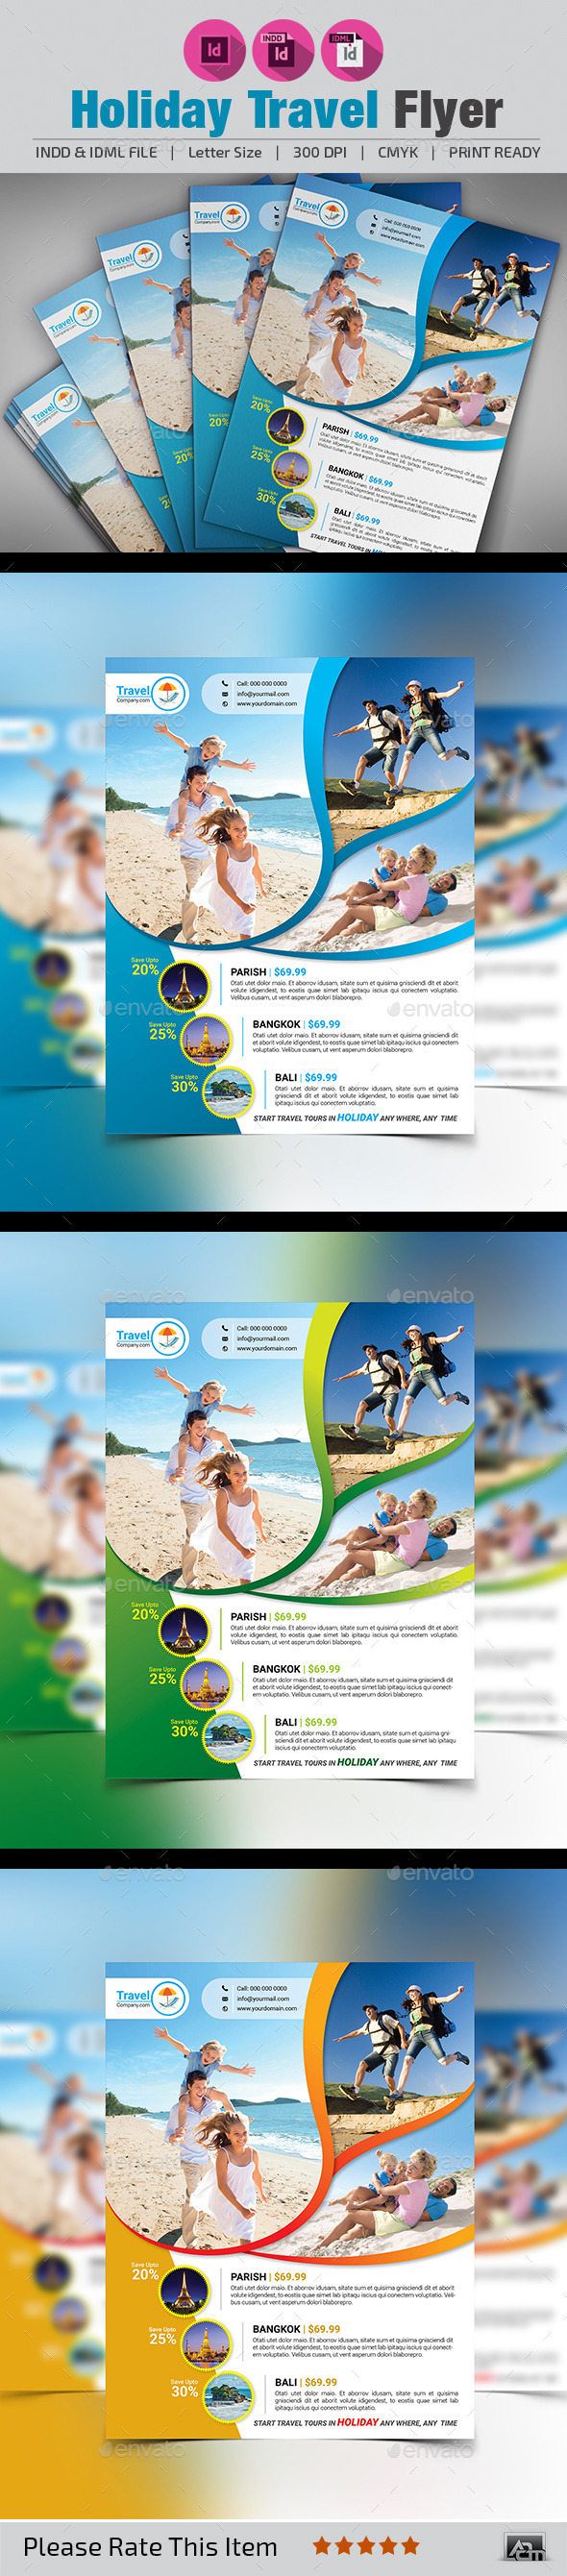 GraphicRiver Holiday Travel Flyer 11293844